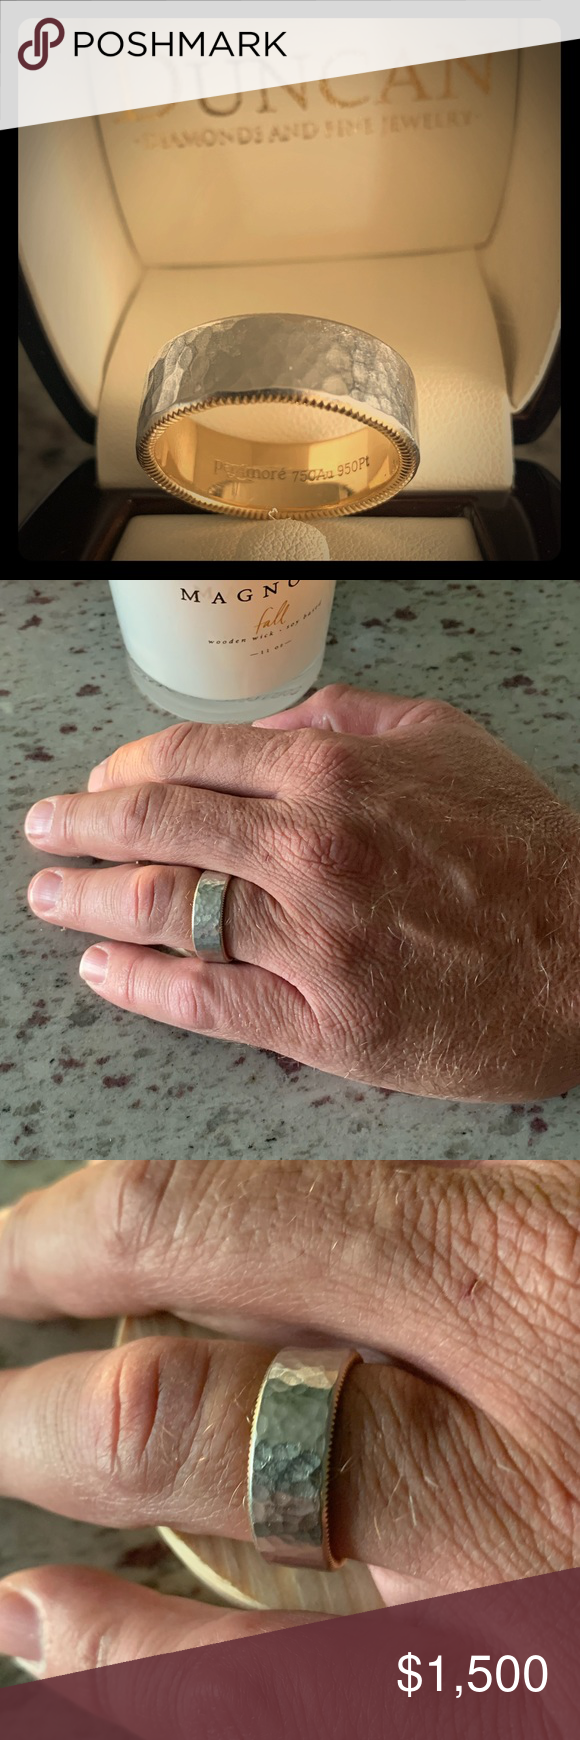 Men's Wedding Band! This was my brother's wedding band. Worn for less than 6 months (the marriage didn't last long!) Ring is in impeccable condition! Includes all receipts, certifications, appraisal, and original ring box. Made of platinum and 18K with a width of 8 millimeters. Hammered finish with a quion edge. Made by Per Amore. Total gold and platinum weight is 11.35 pennyweights. Purchased in May 2017 in Lake Ozark, MO from Duncan Diamonds and Fine Jewelry.  IJO Master Jeweler, GIA certified